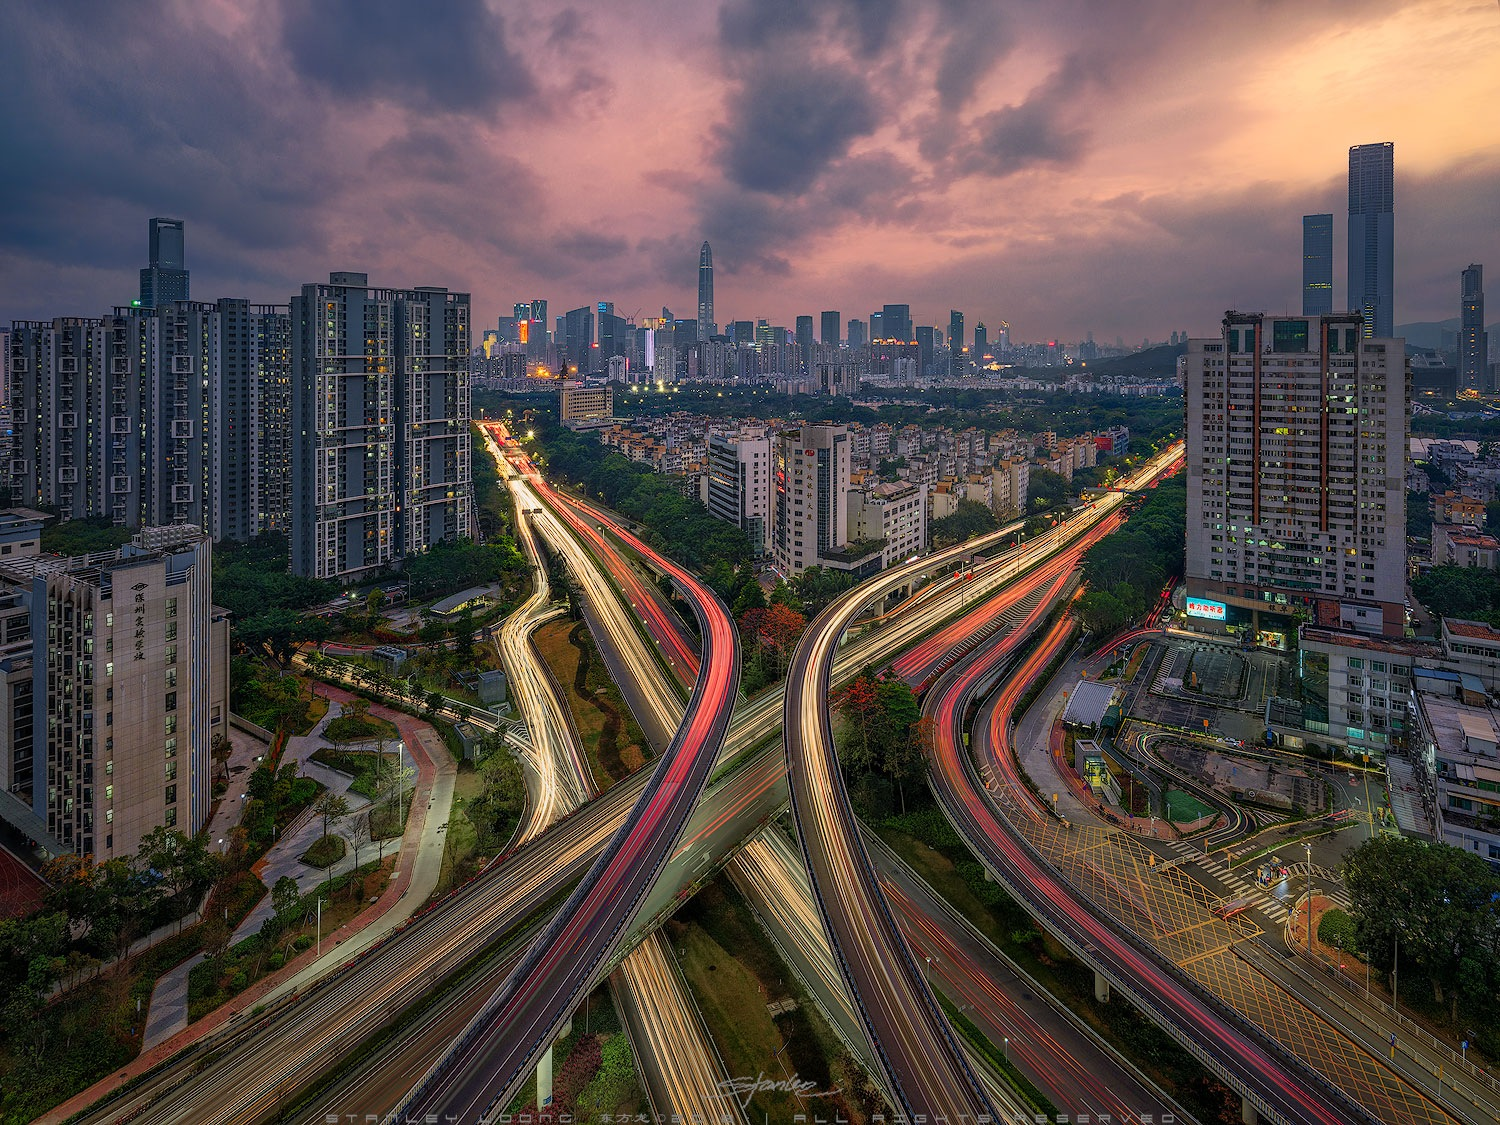 S h e n z h e n by Stanley Loong